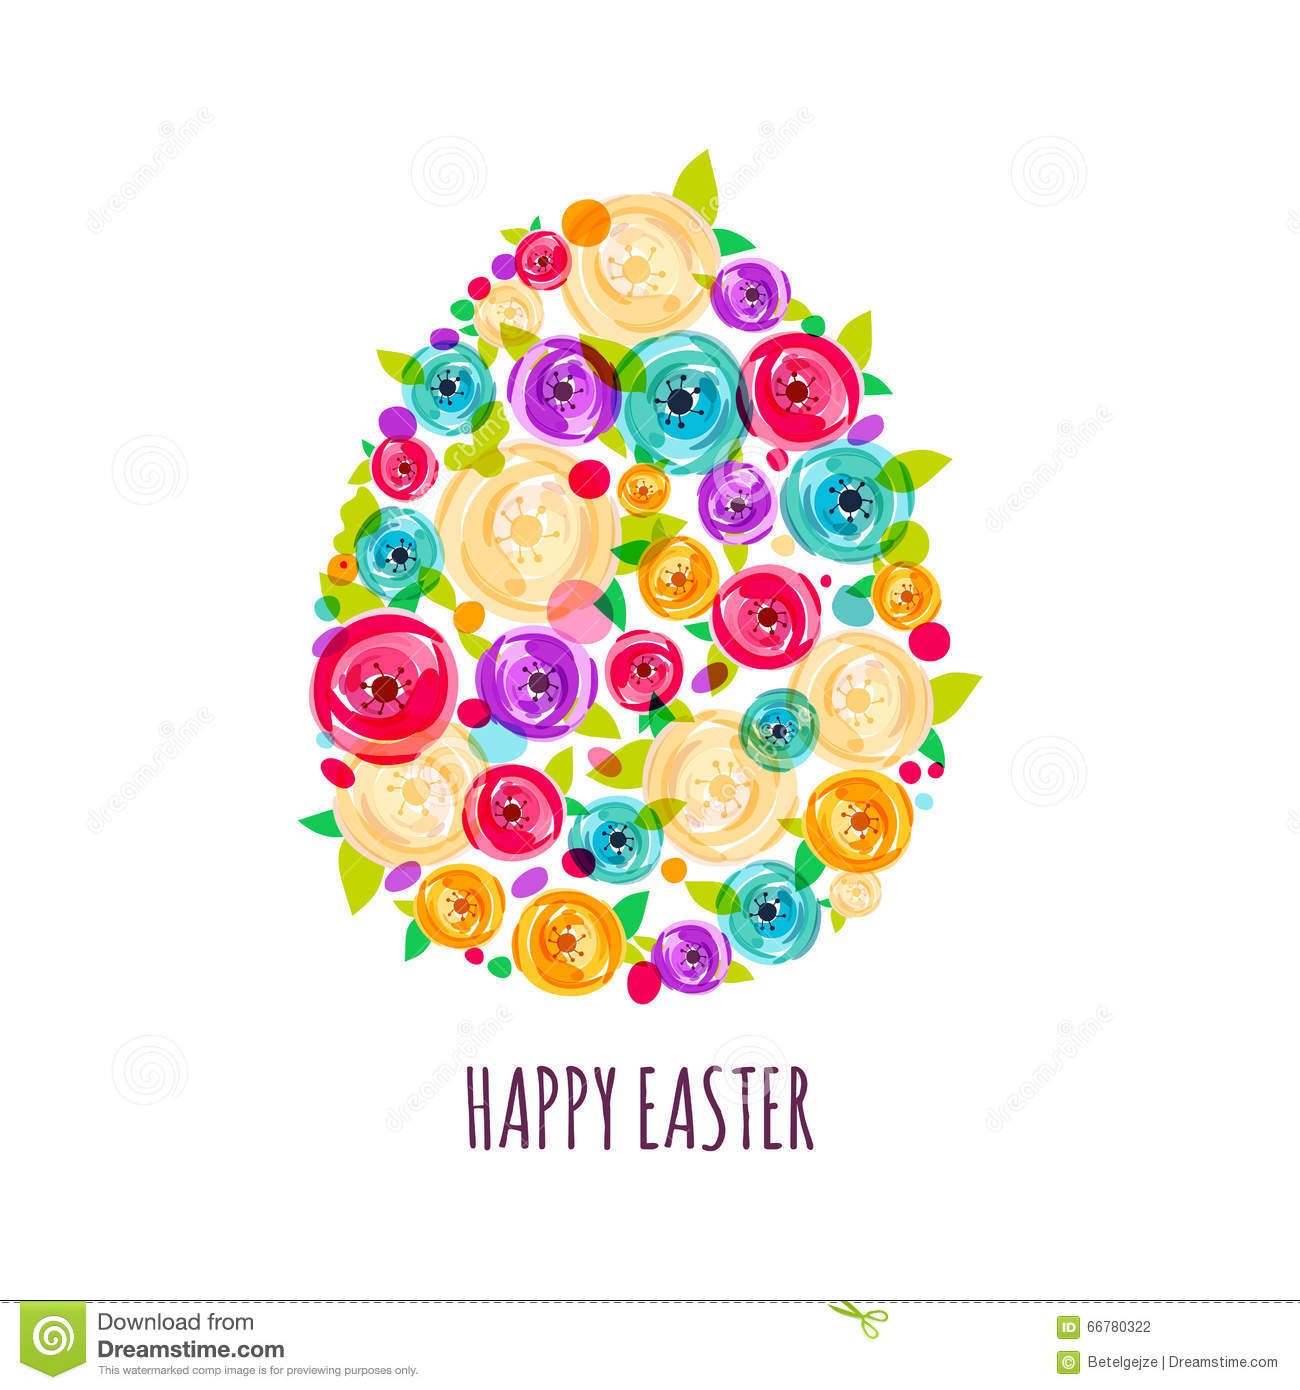 Easter Greeting Card With Egg Made From Colorful Abstract Rose